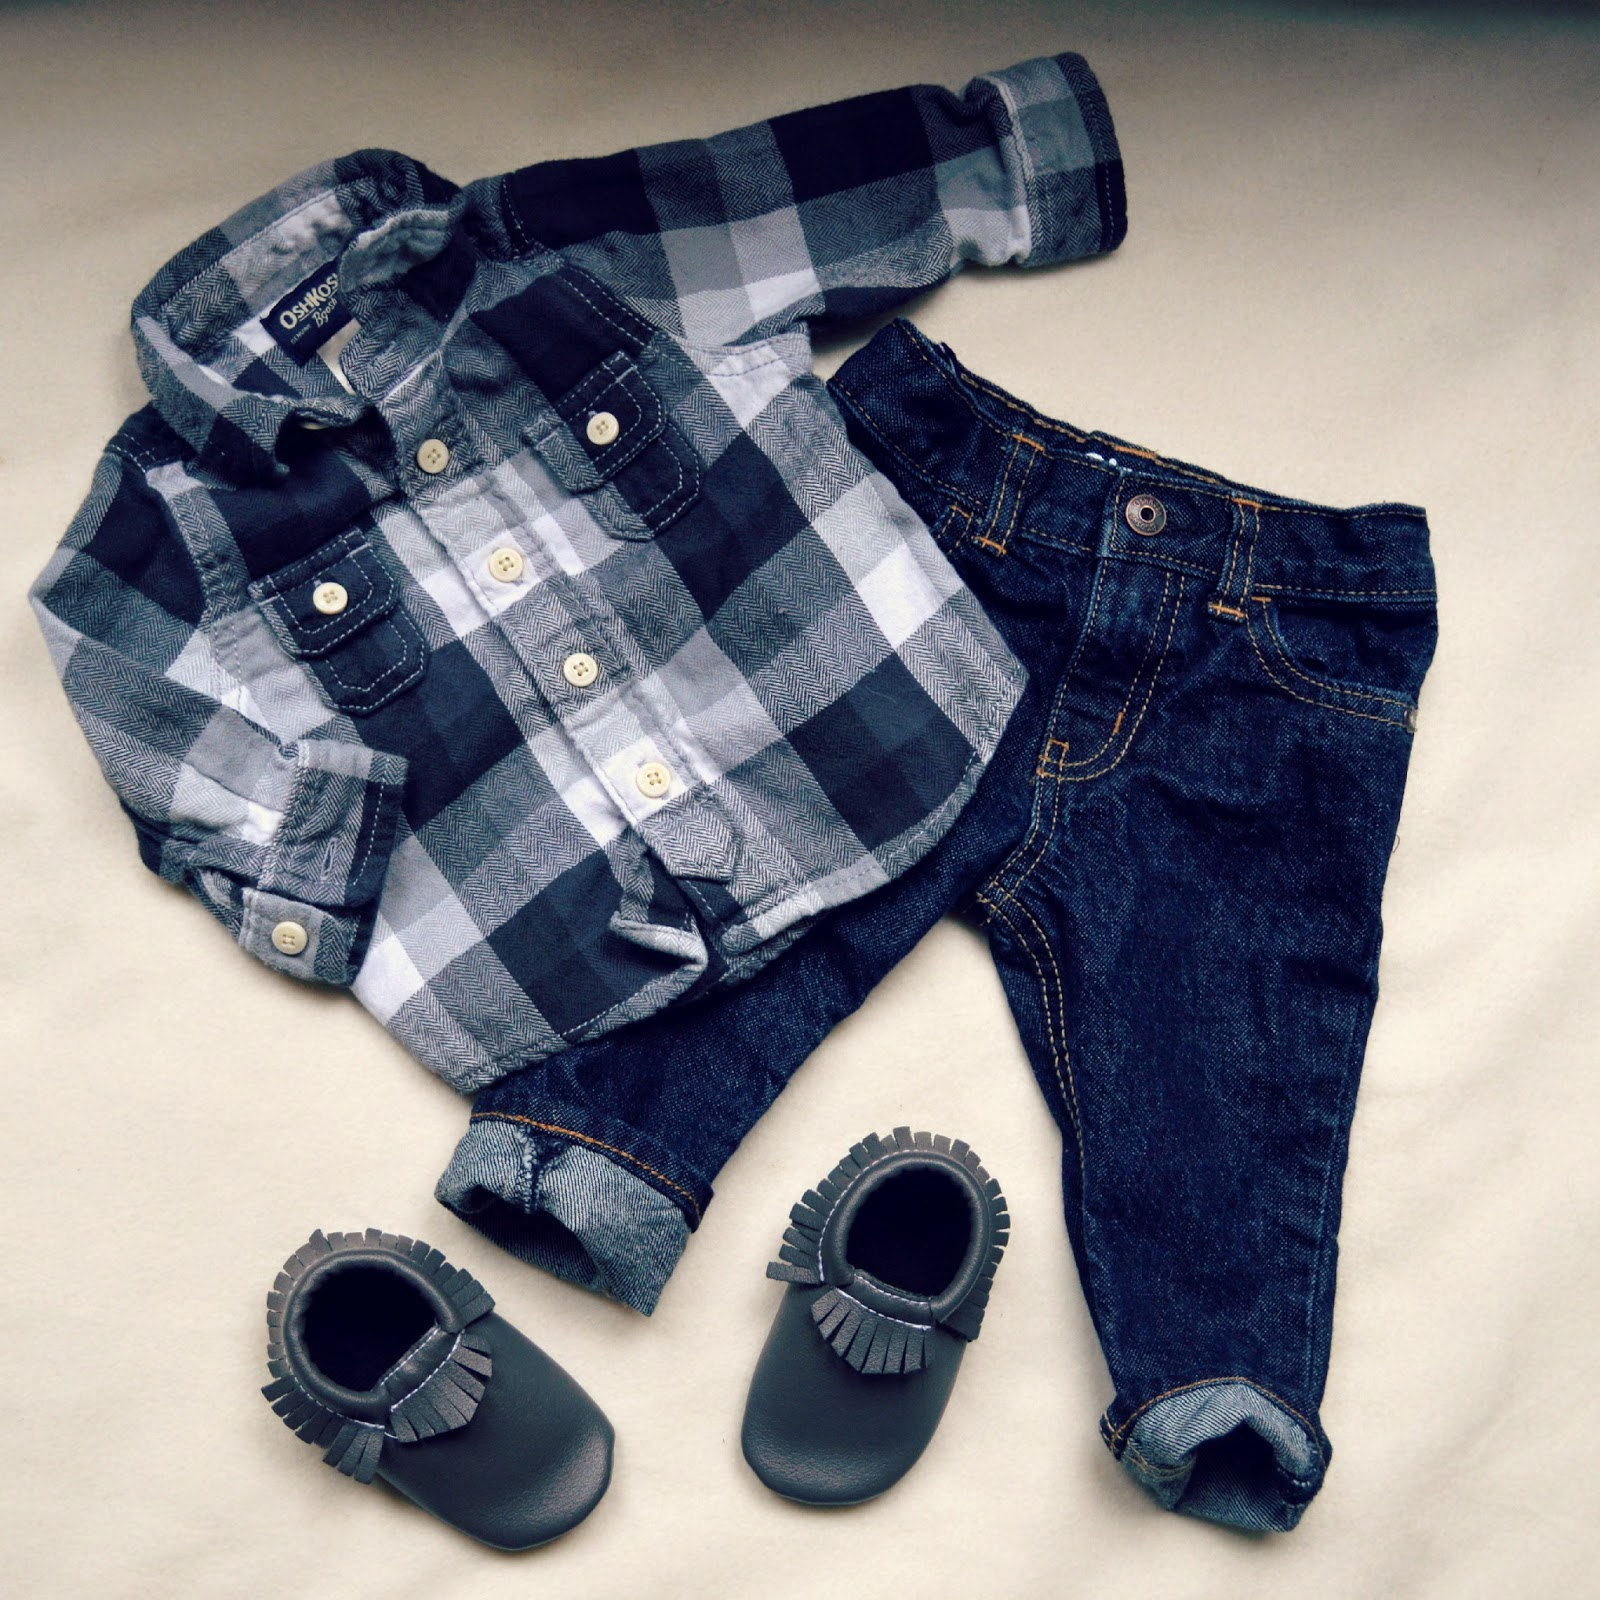 Kids outfit inspirations with Oshkosh B'gosh (sponsored) #mc #givehappy